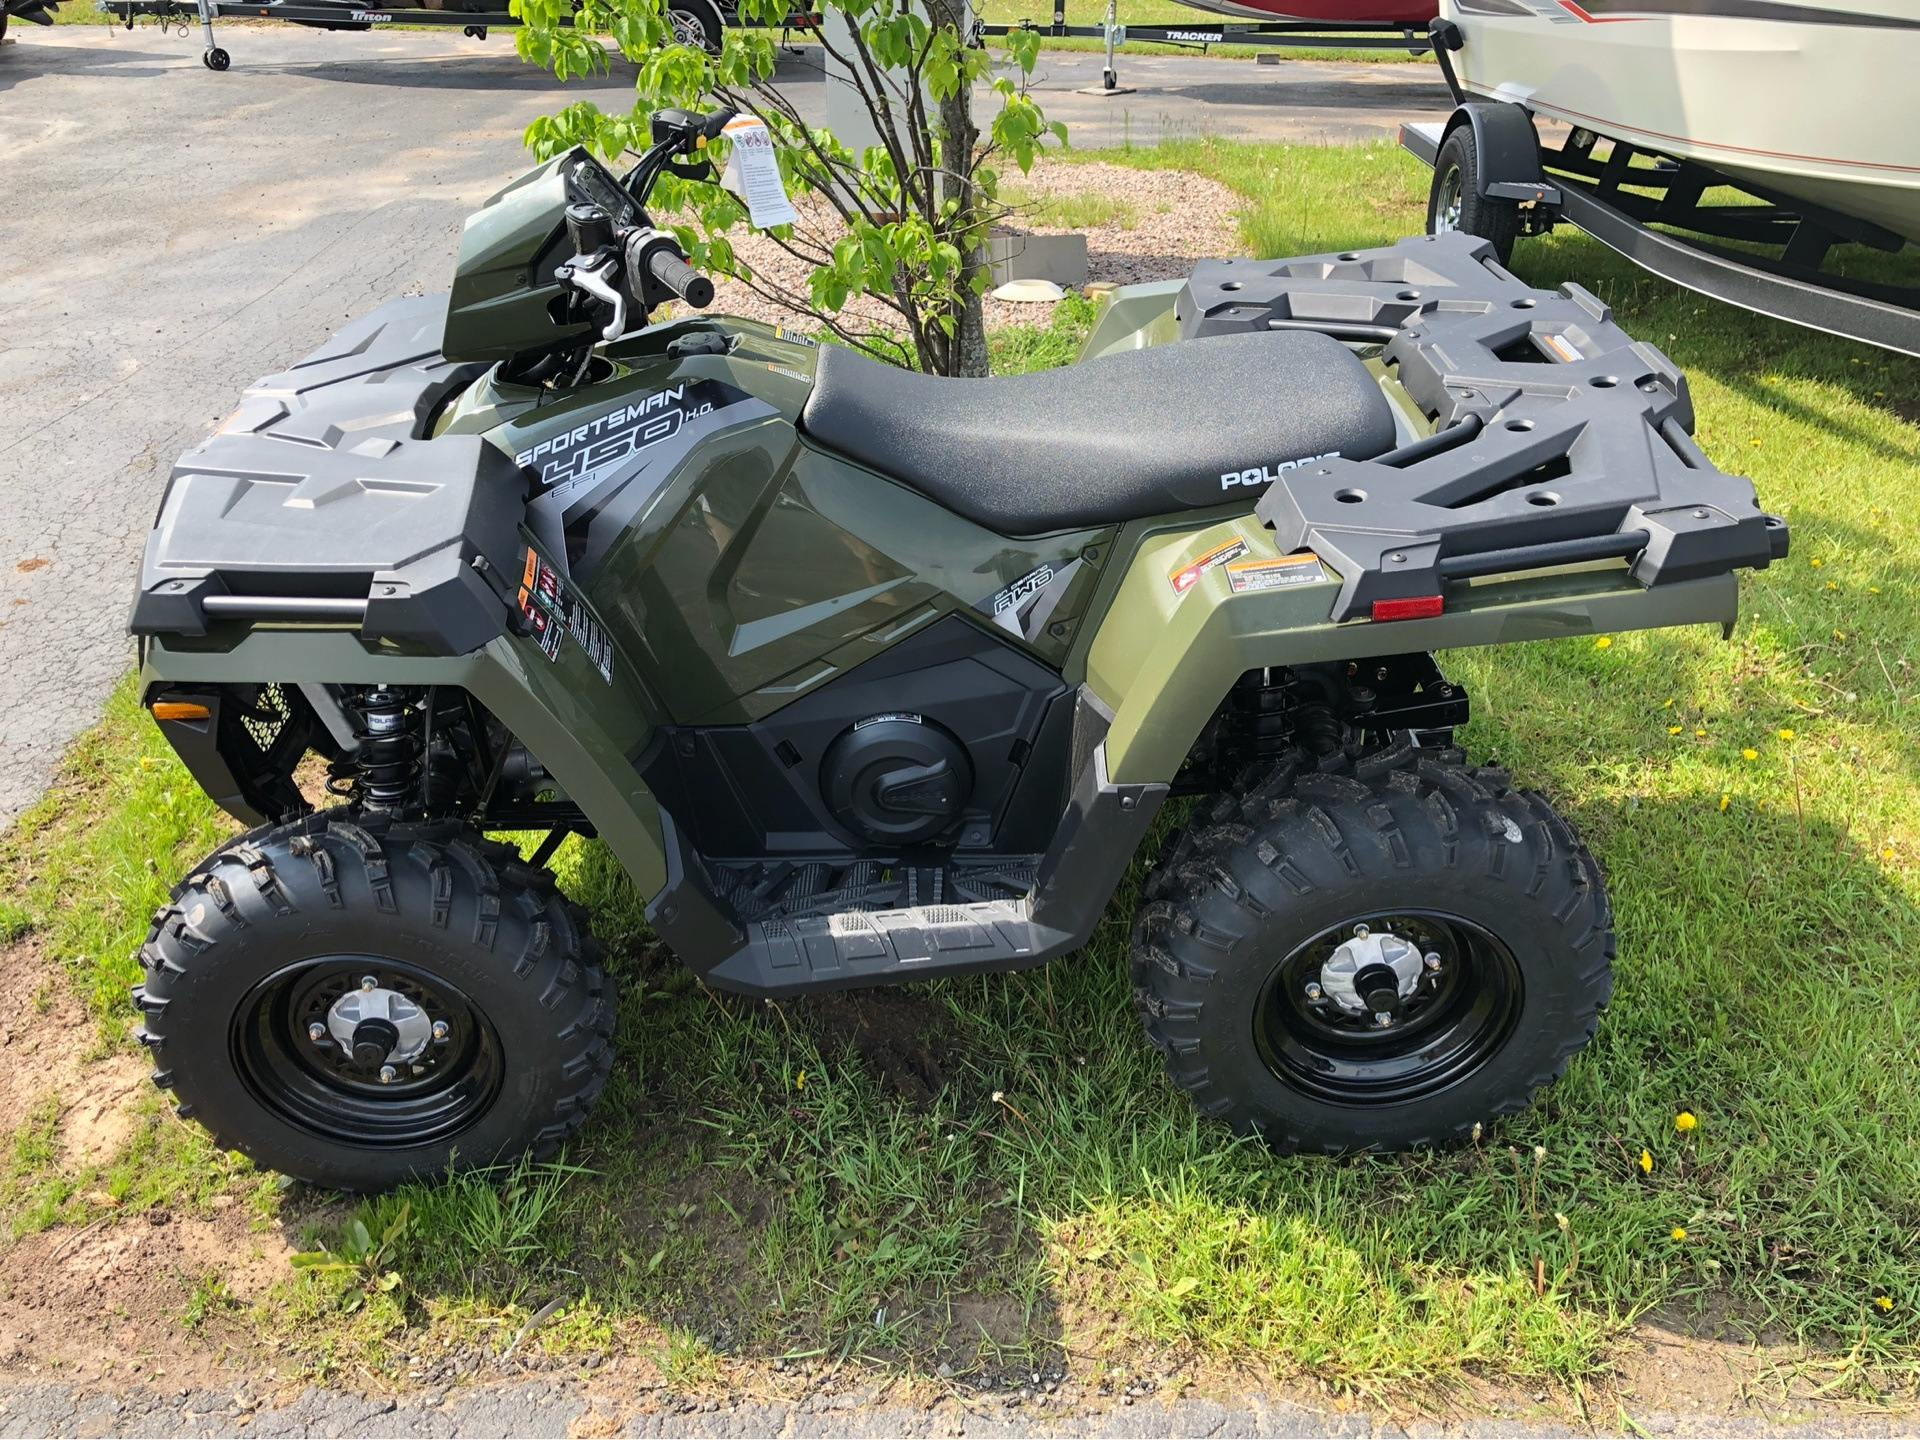 2019 Polaris Sportsman 450 H.O. in Appleton, Wisconsin - Photo 2